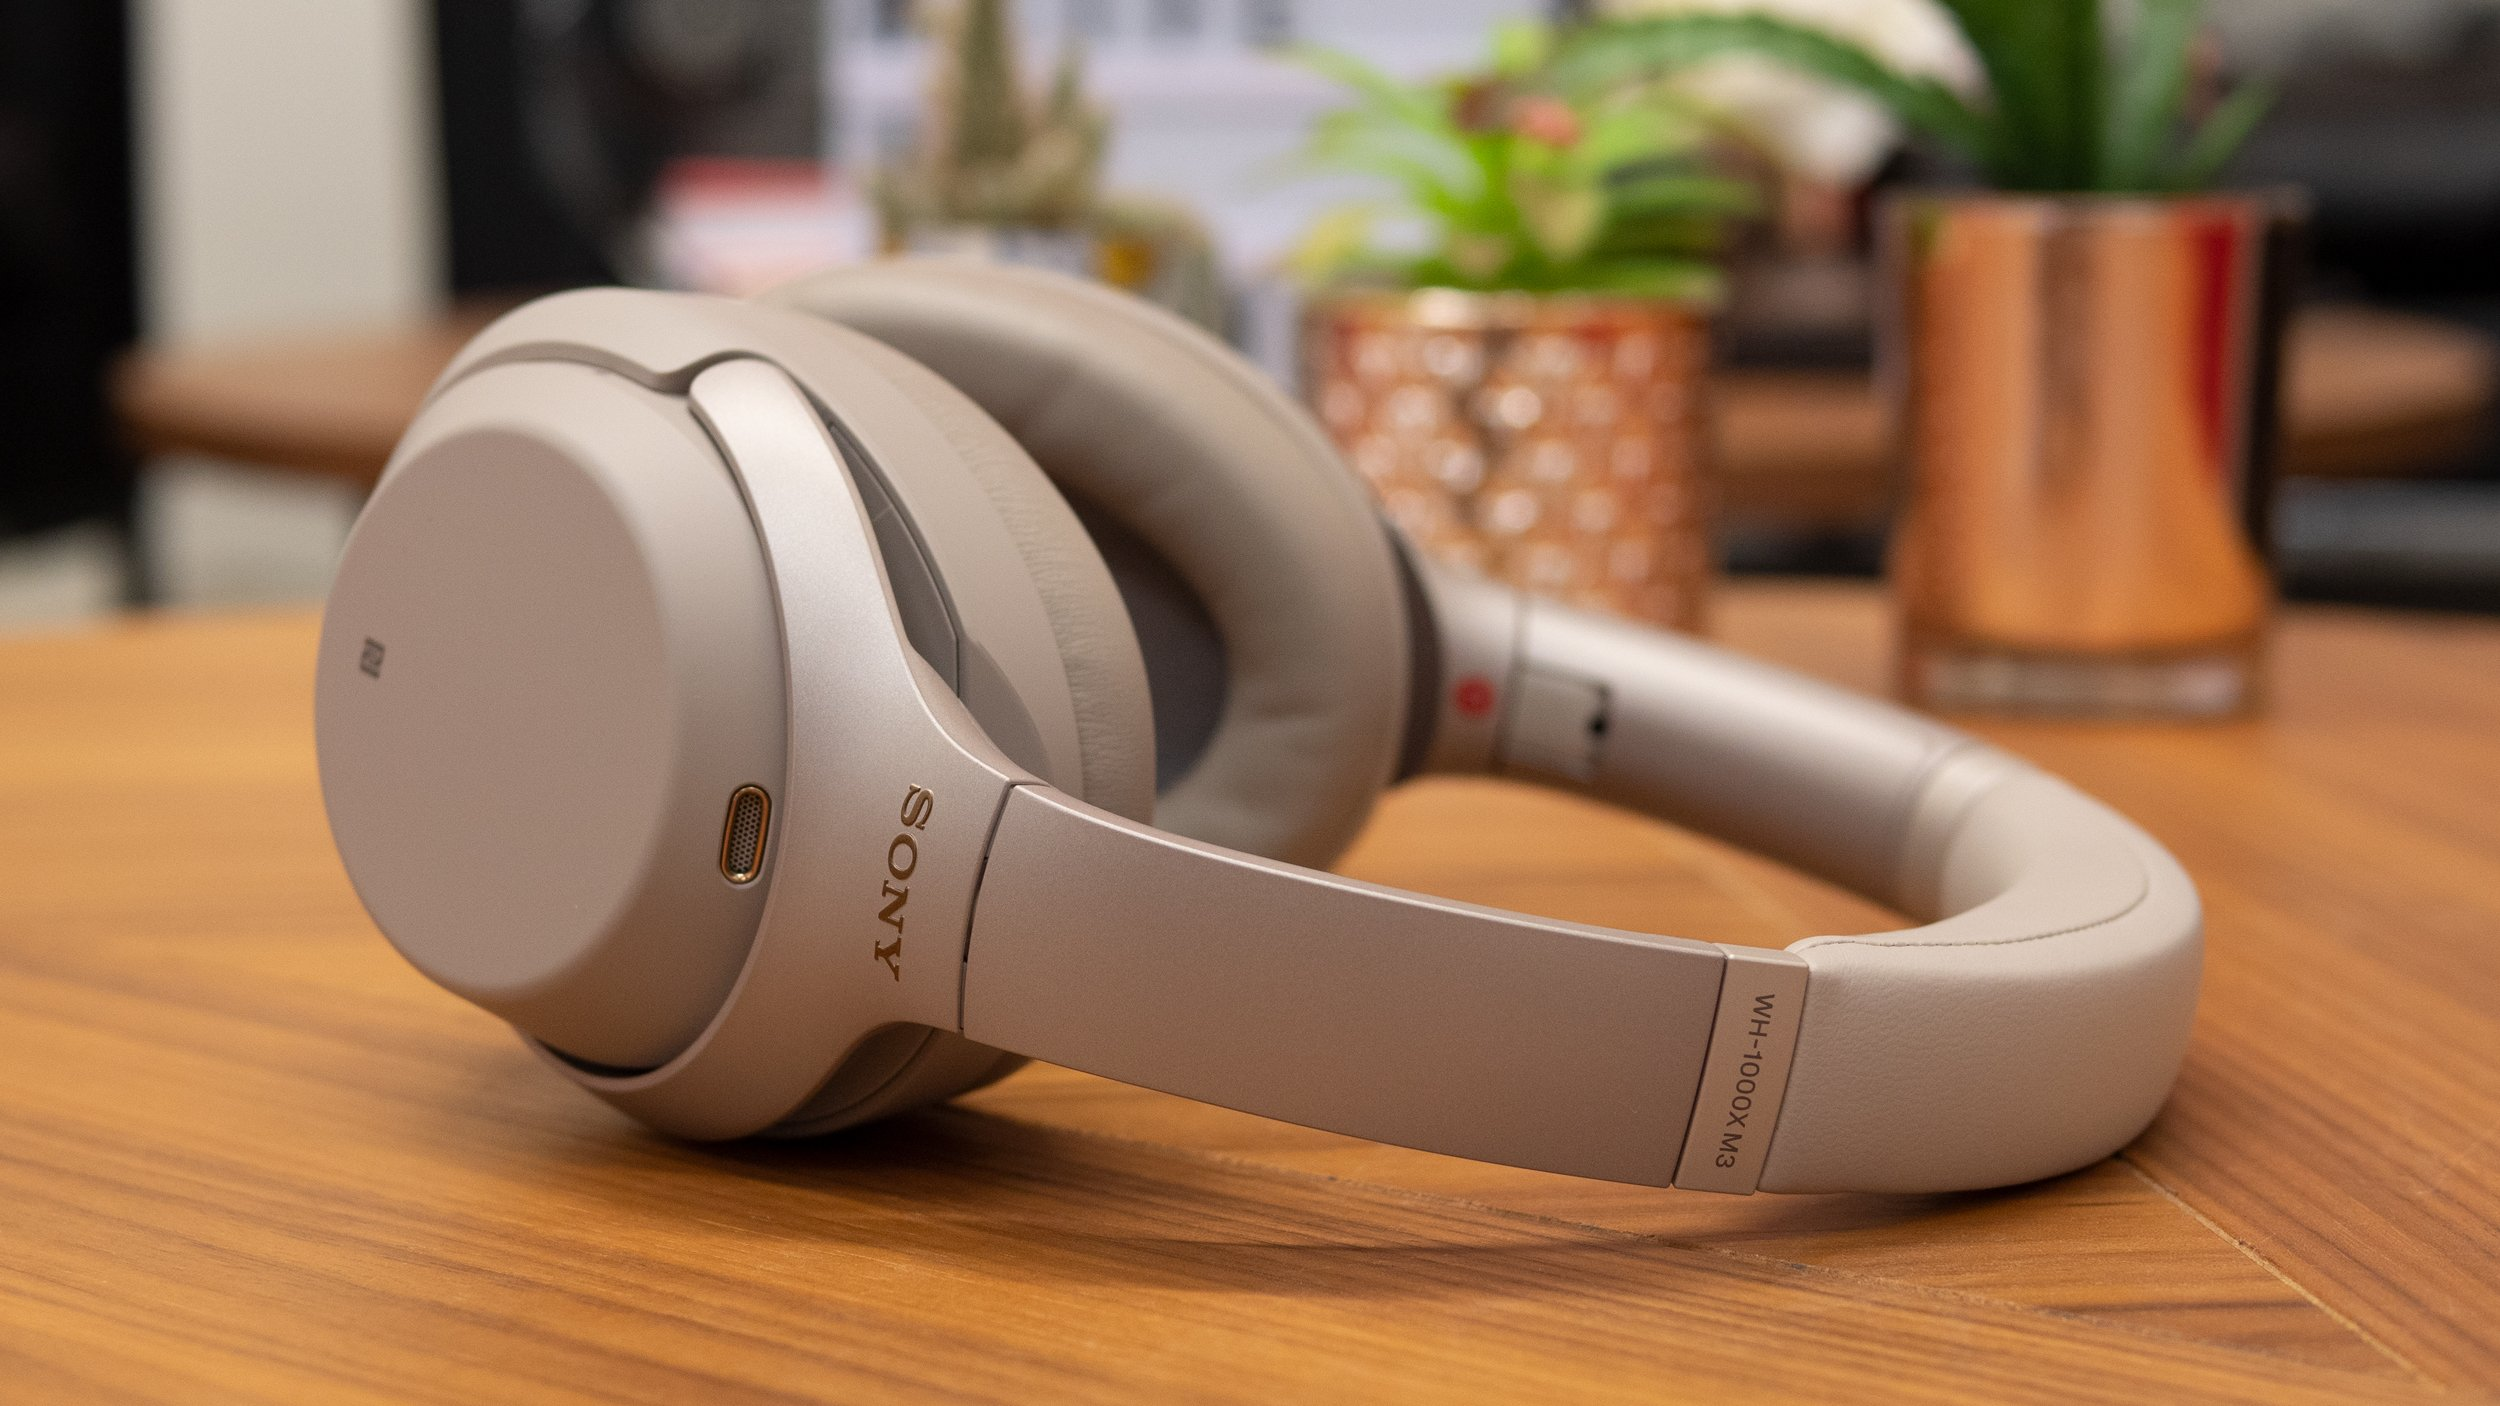 Best noise-cancelling headphones 2019: The best ANC